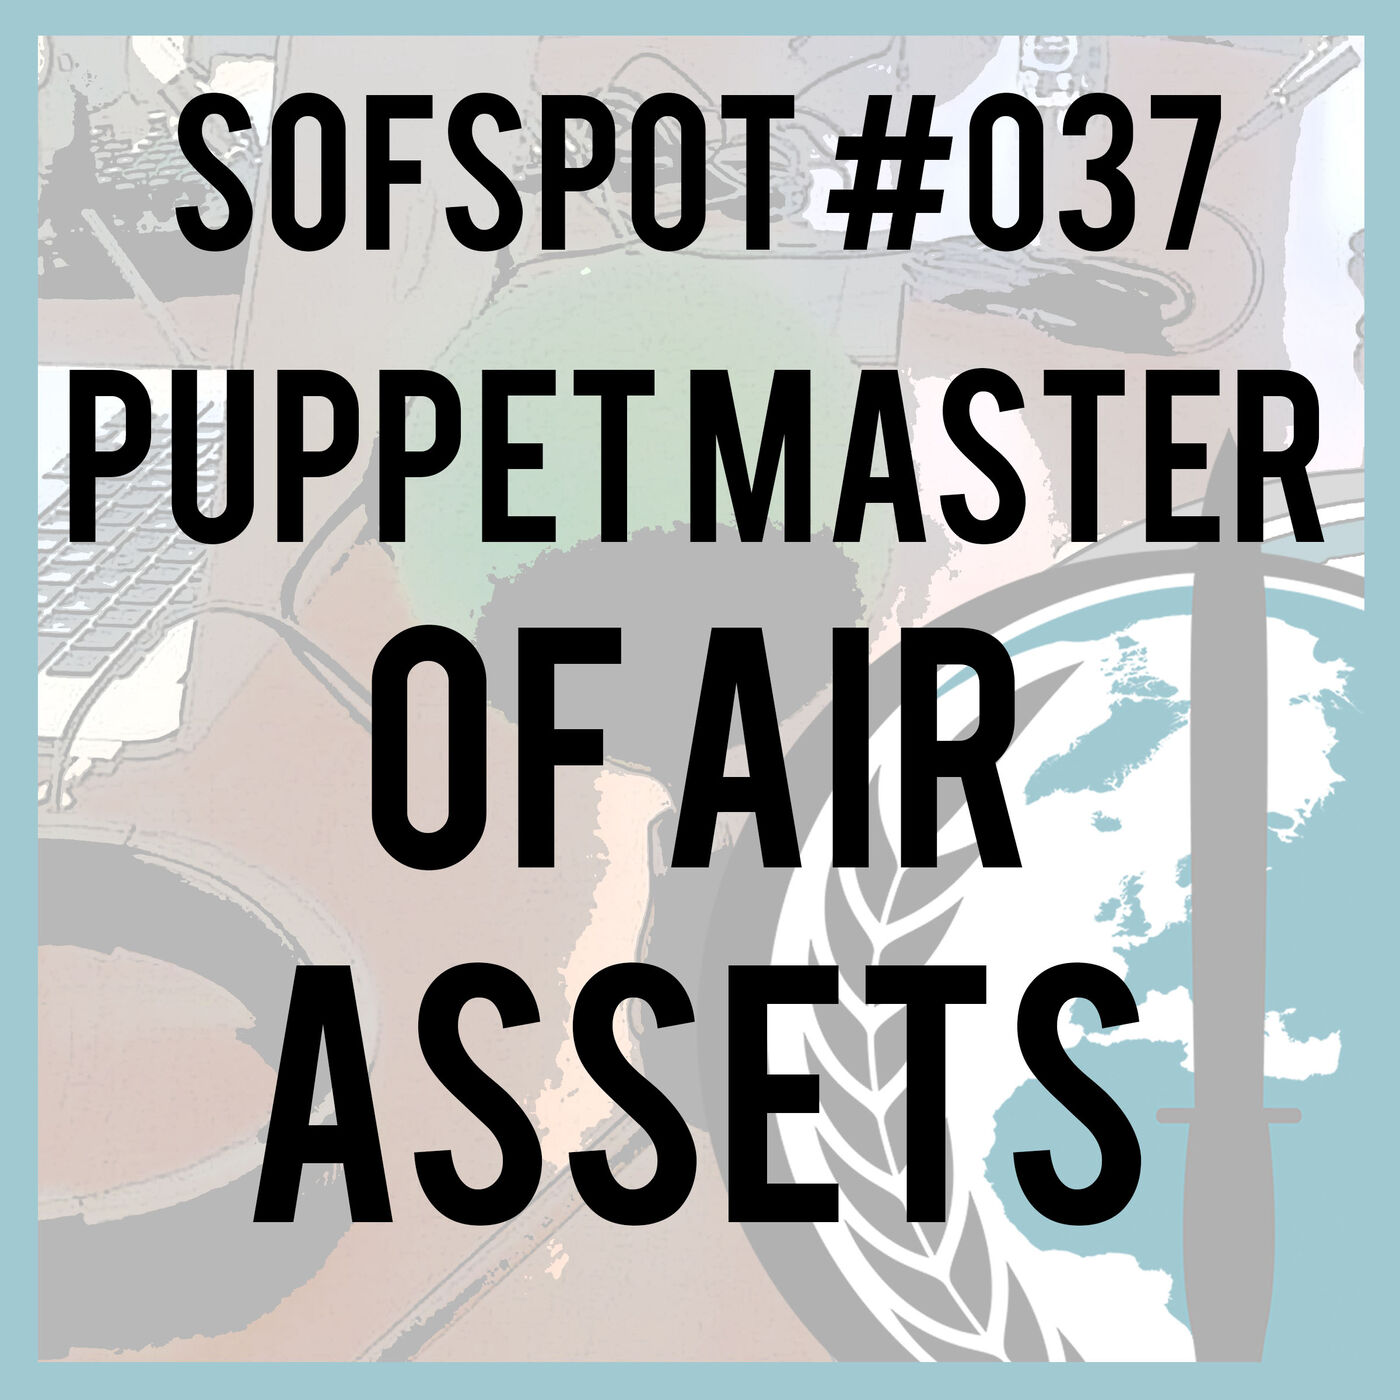 Puppet Master of Air Assets